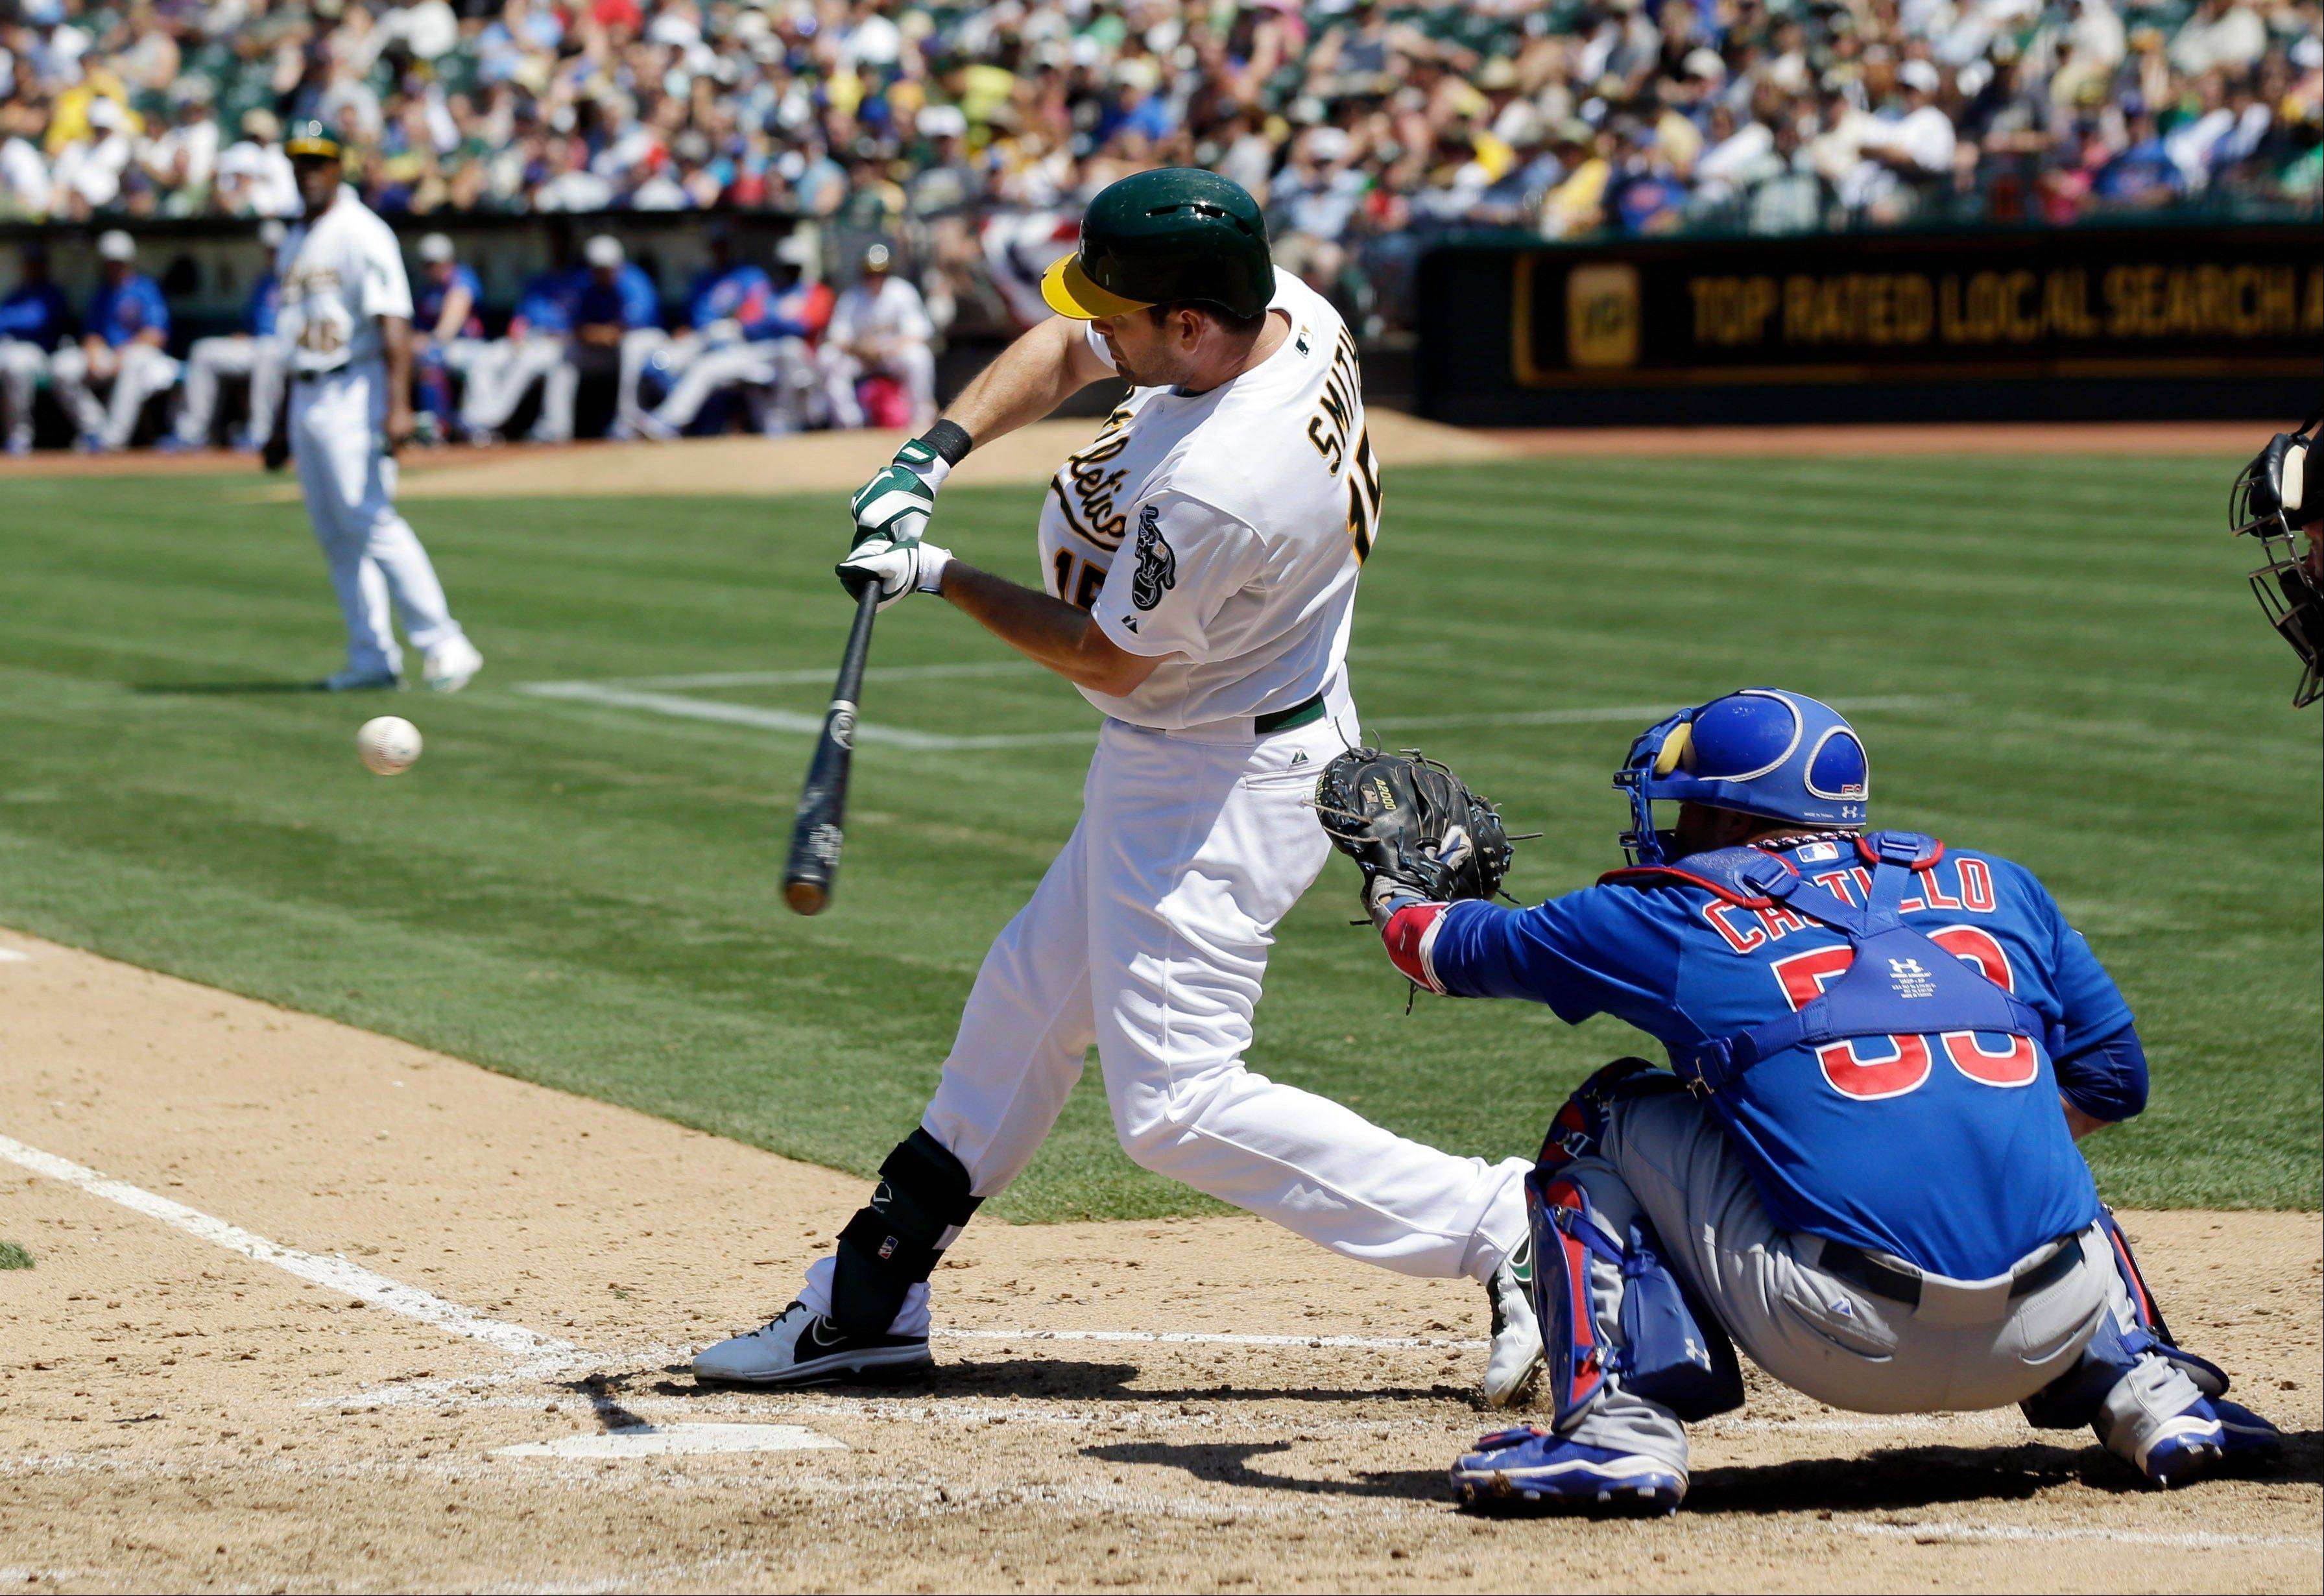 Oakland Athletics� Seth Smith singles against the Cubs during the seventh inning of a baseball game Thursday, July 4, 2013 in Oakland, Calif.